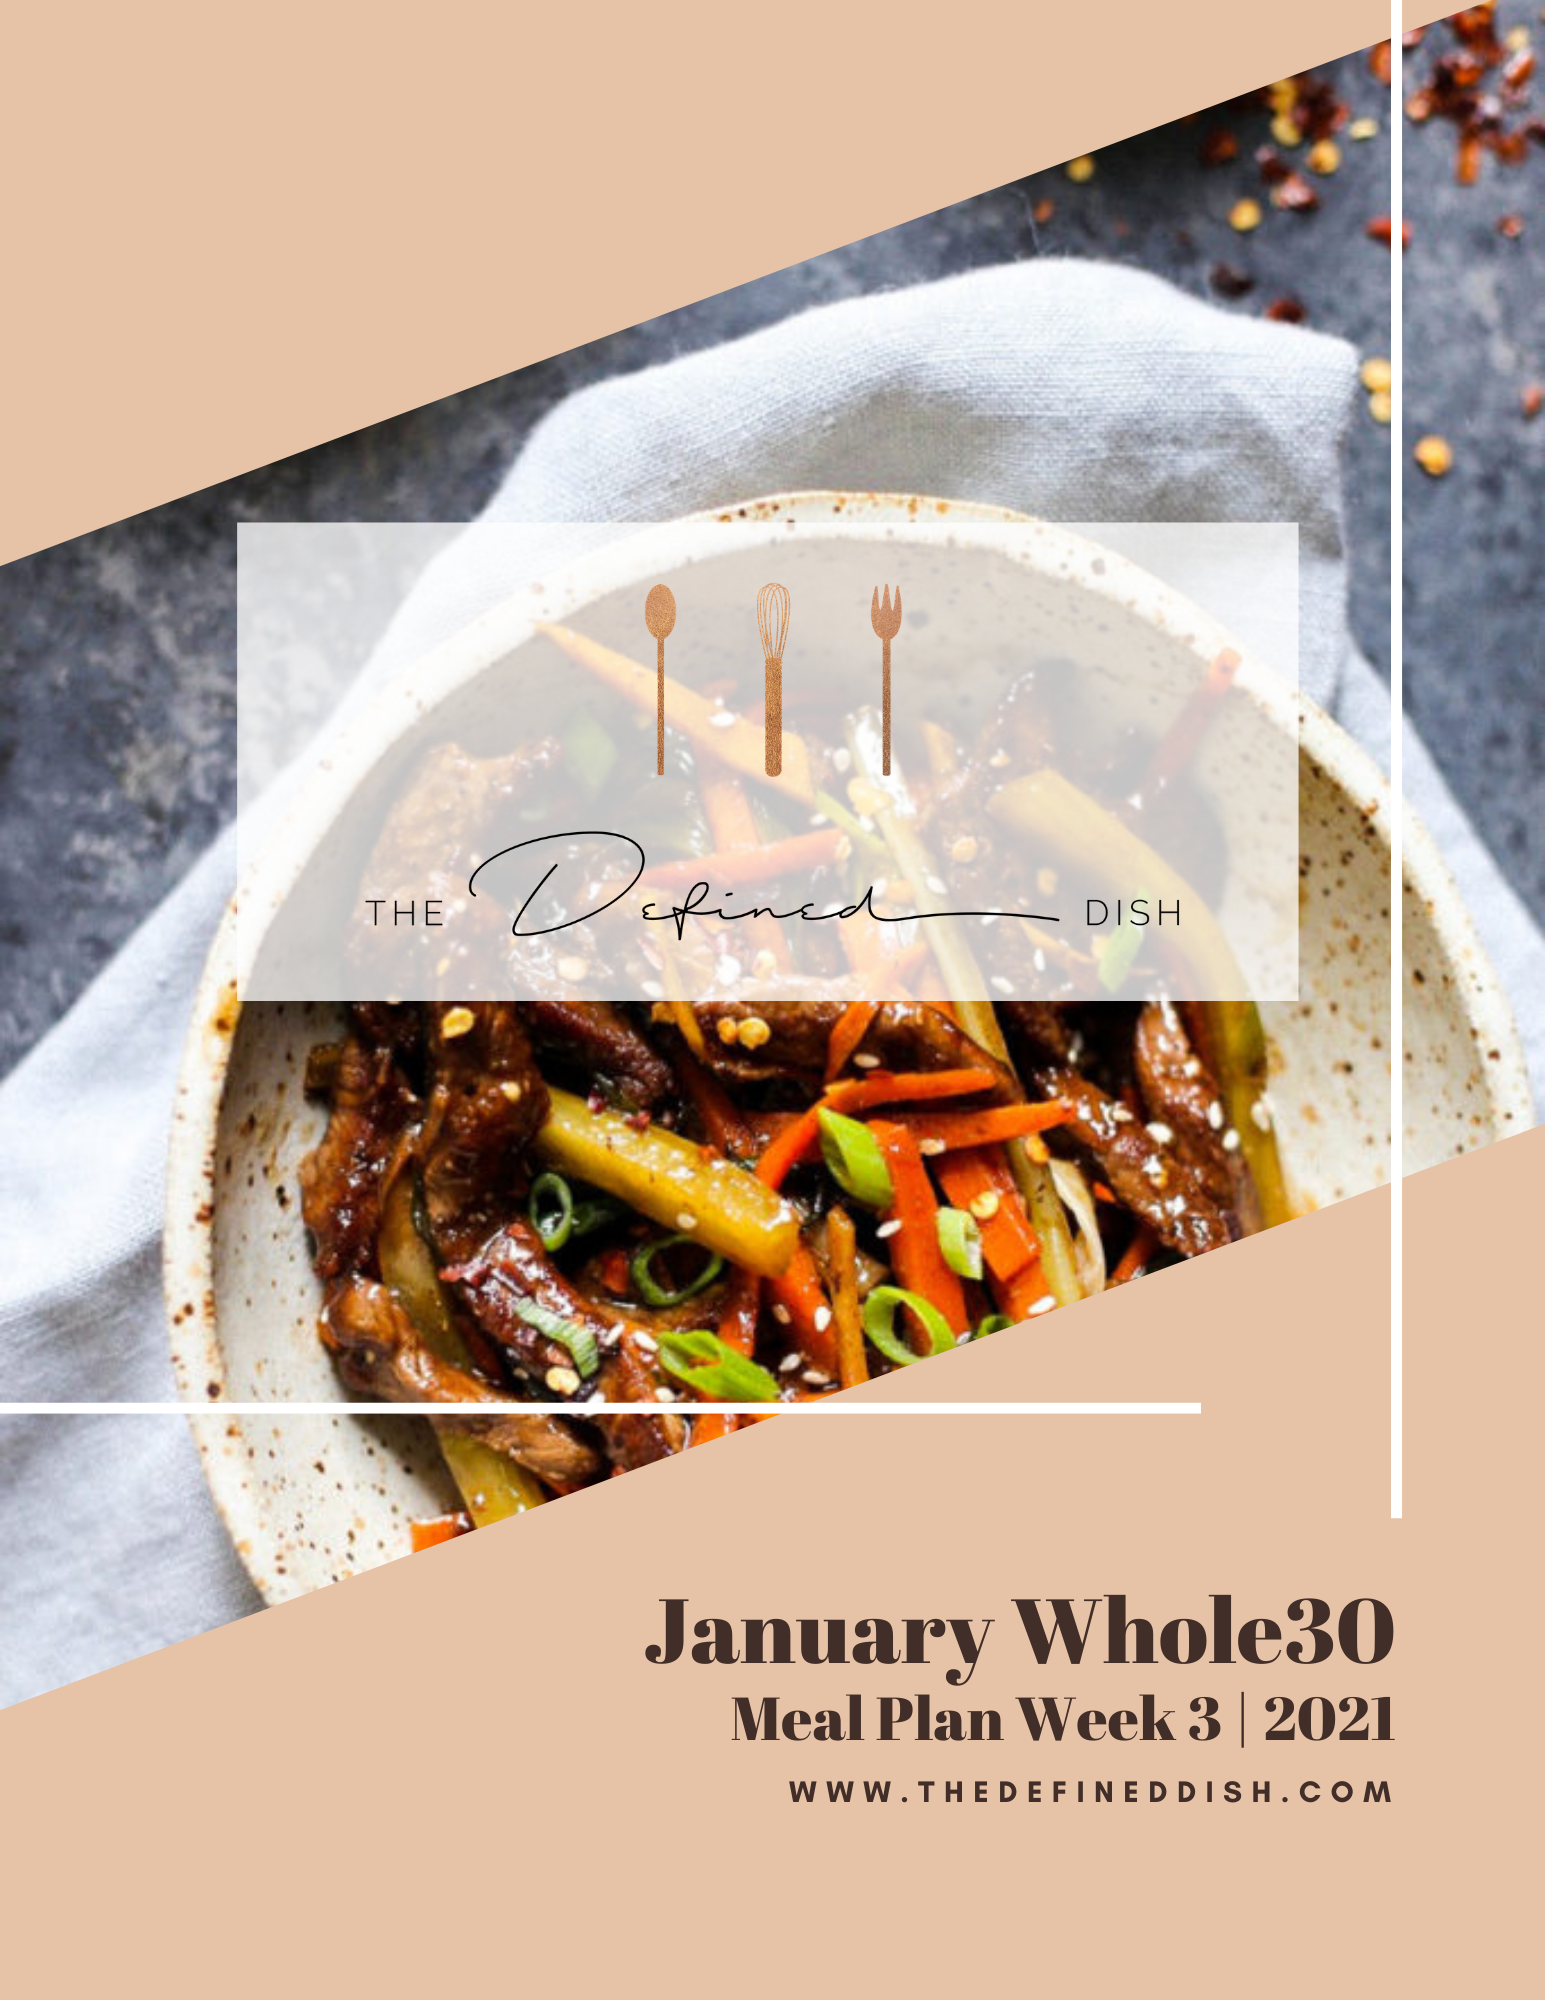 Jan W30 Meal Plan 3